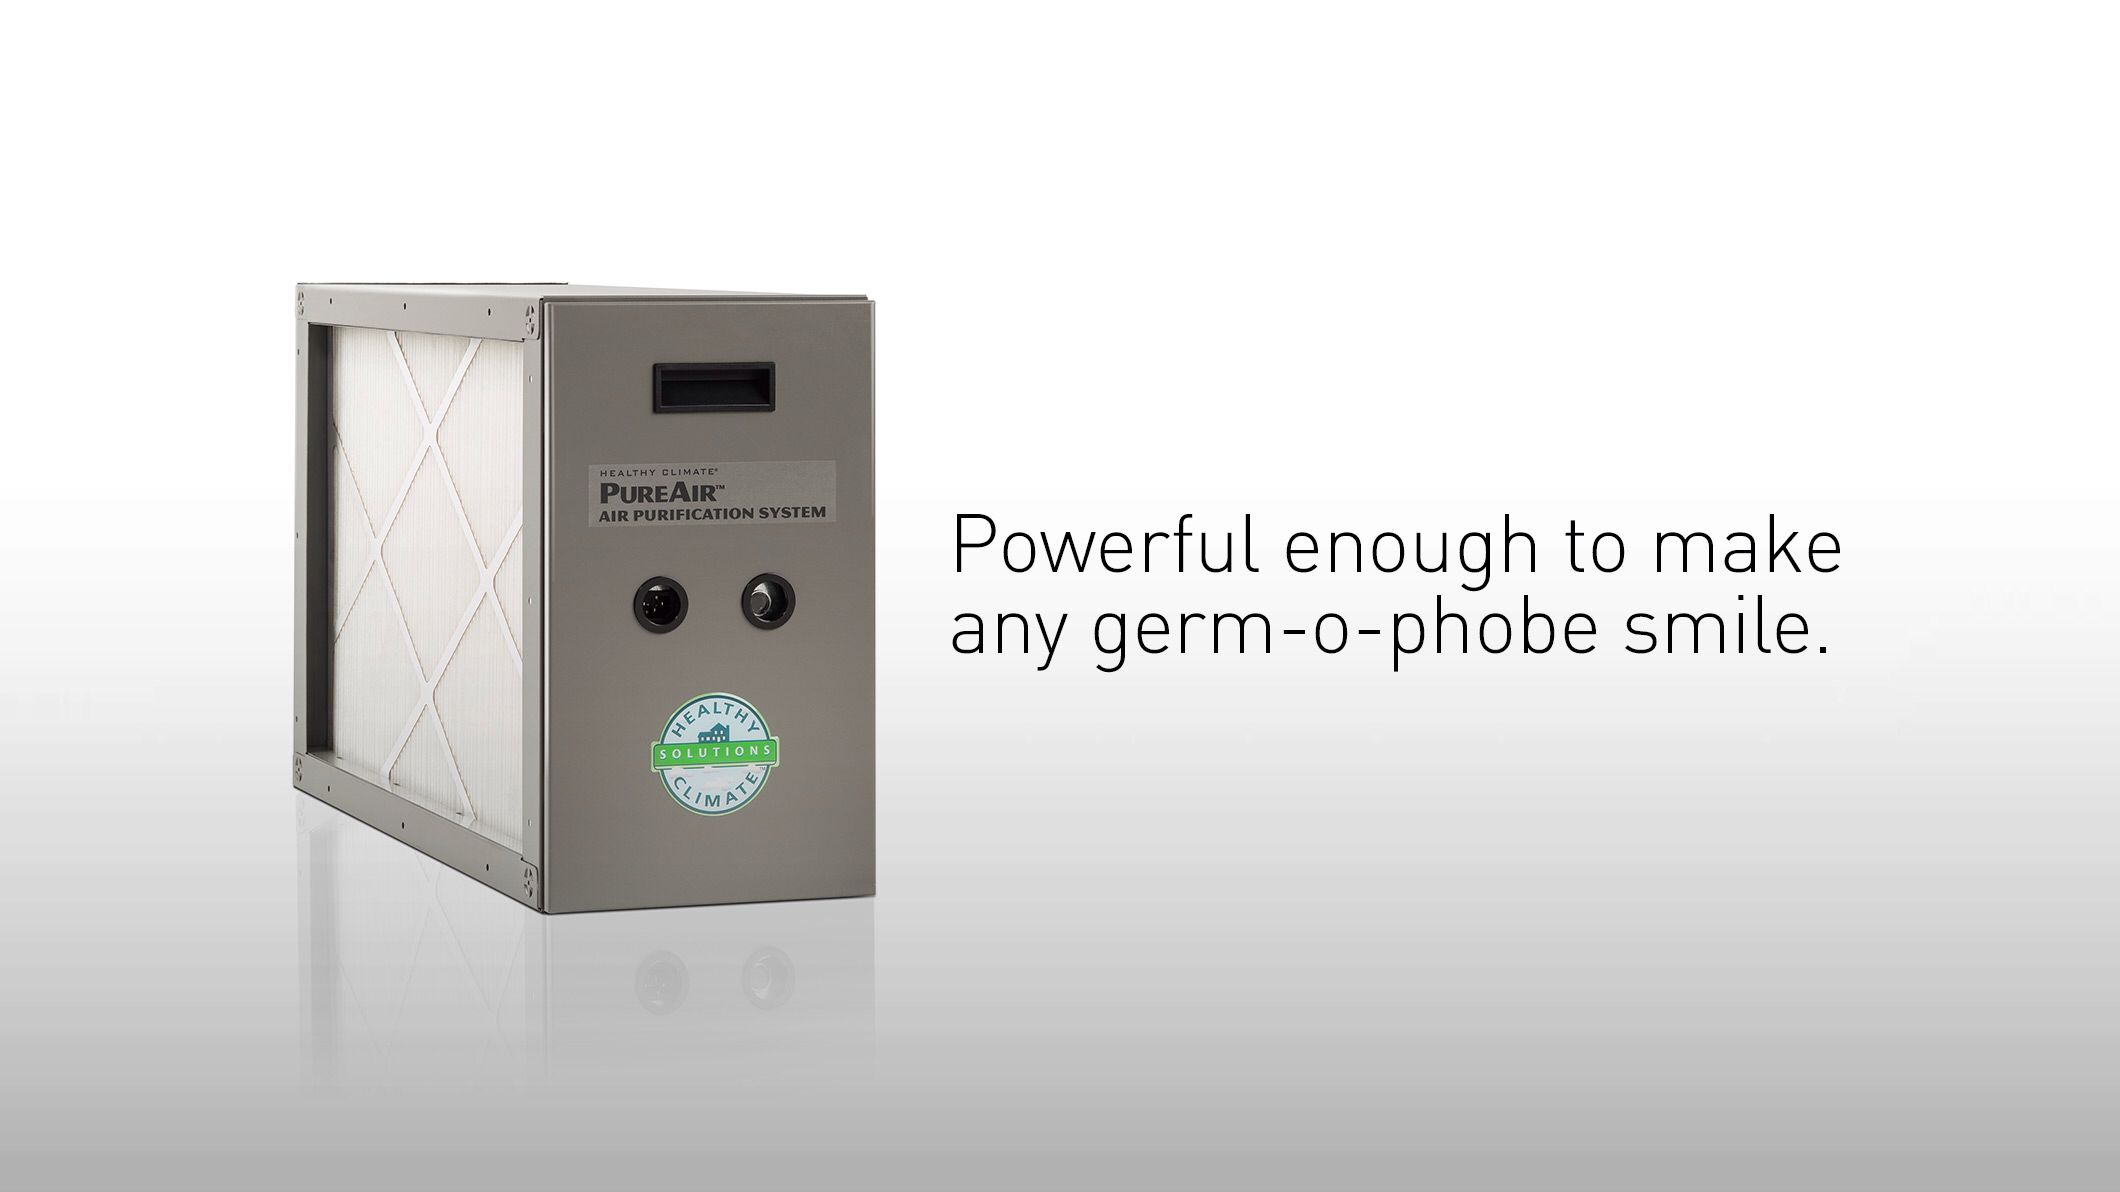 The Pure Air Air Purification System From Lennox Gives You Hospital Quality Air In Your Home But Don T Forget To Air Purification Systems Duct Work Indoor Air